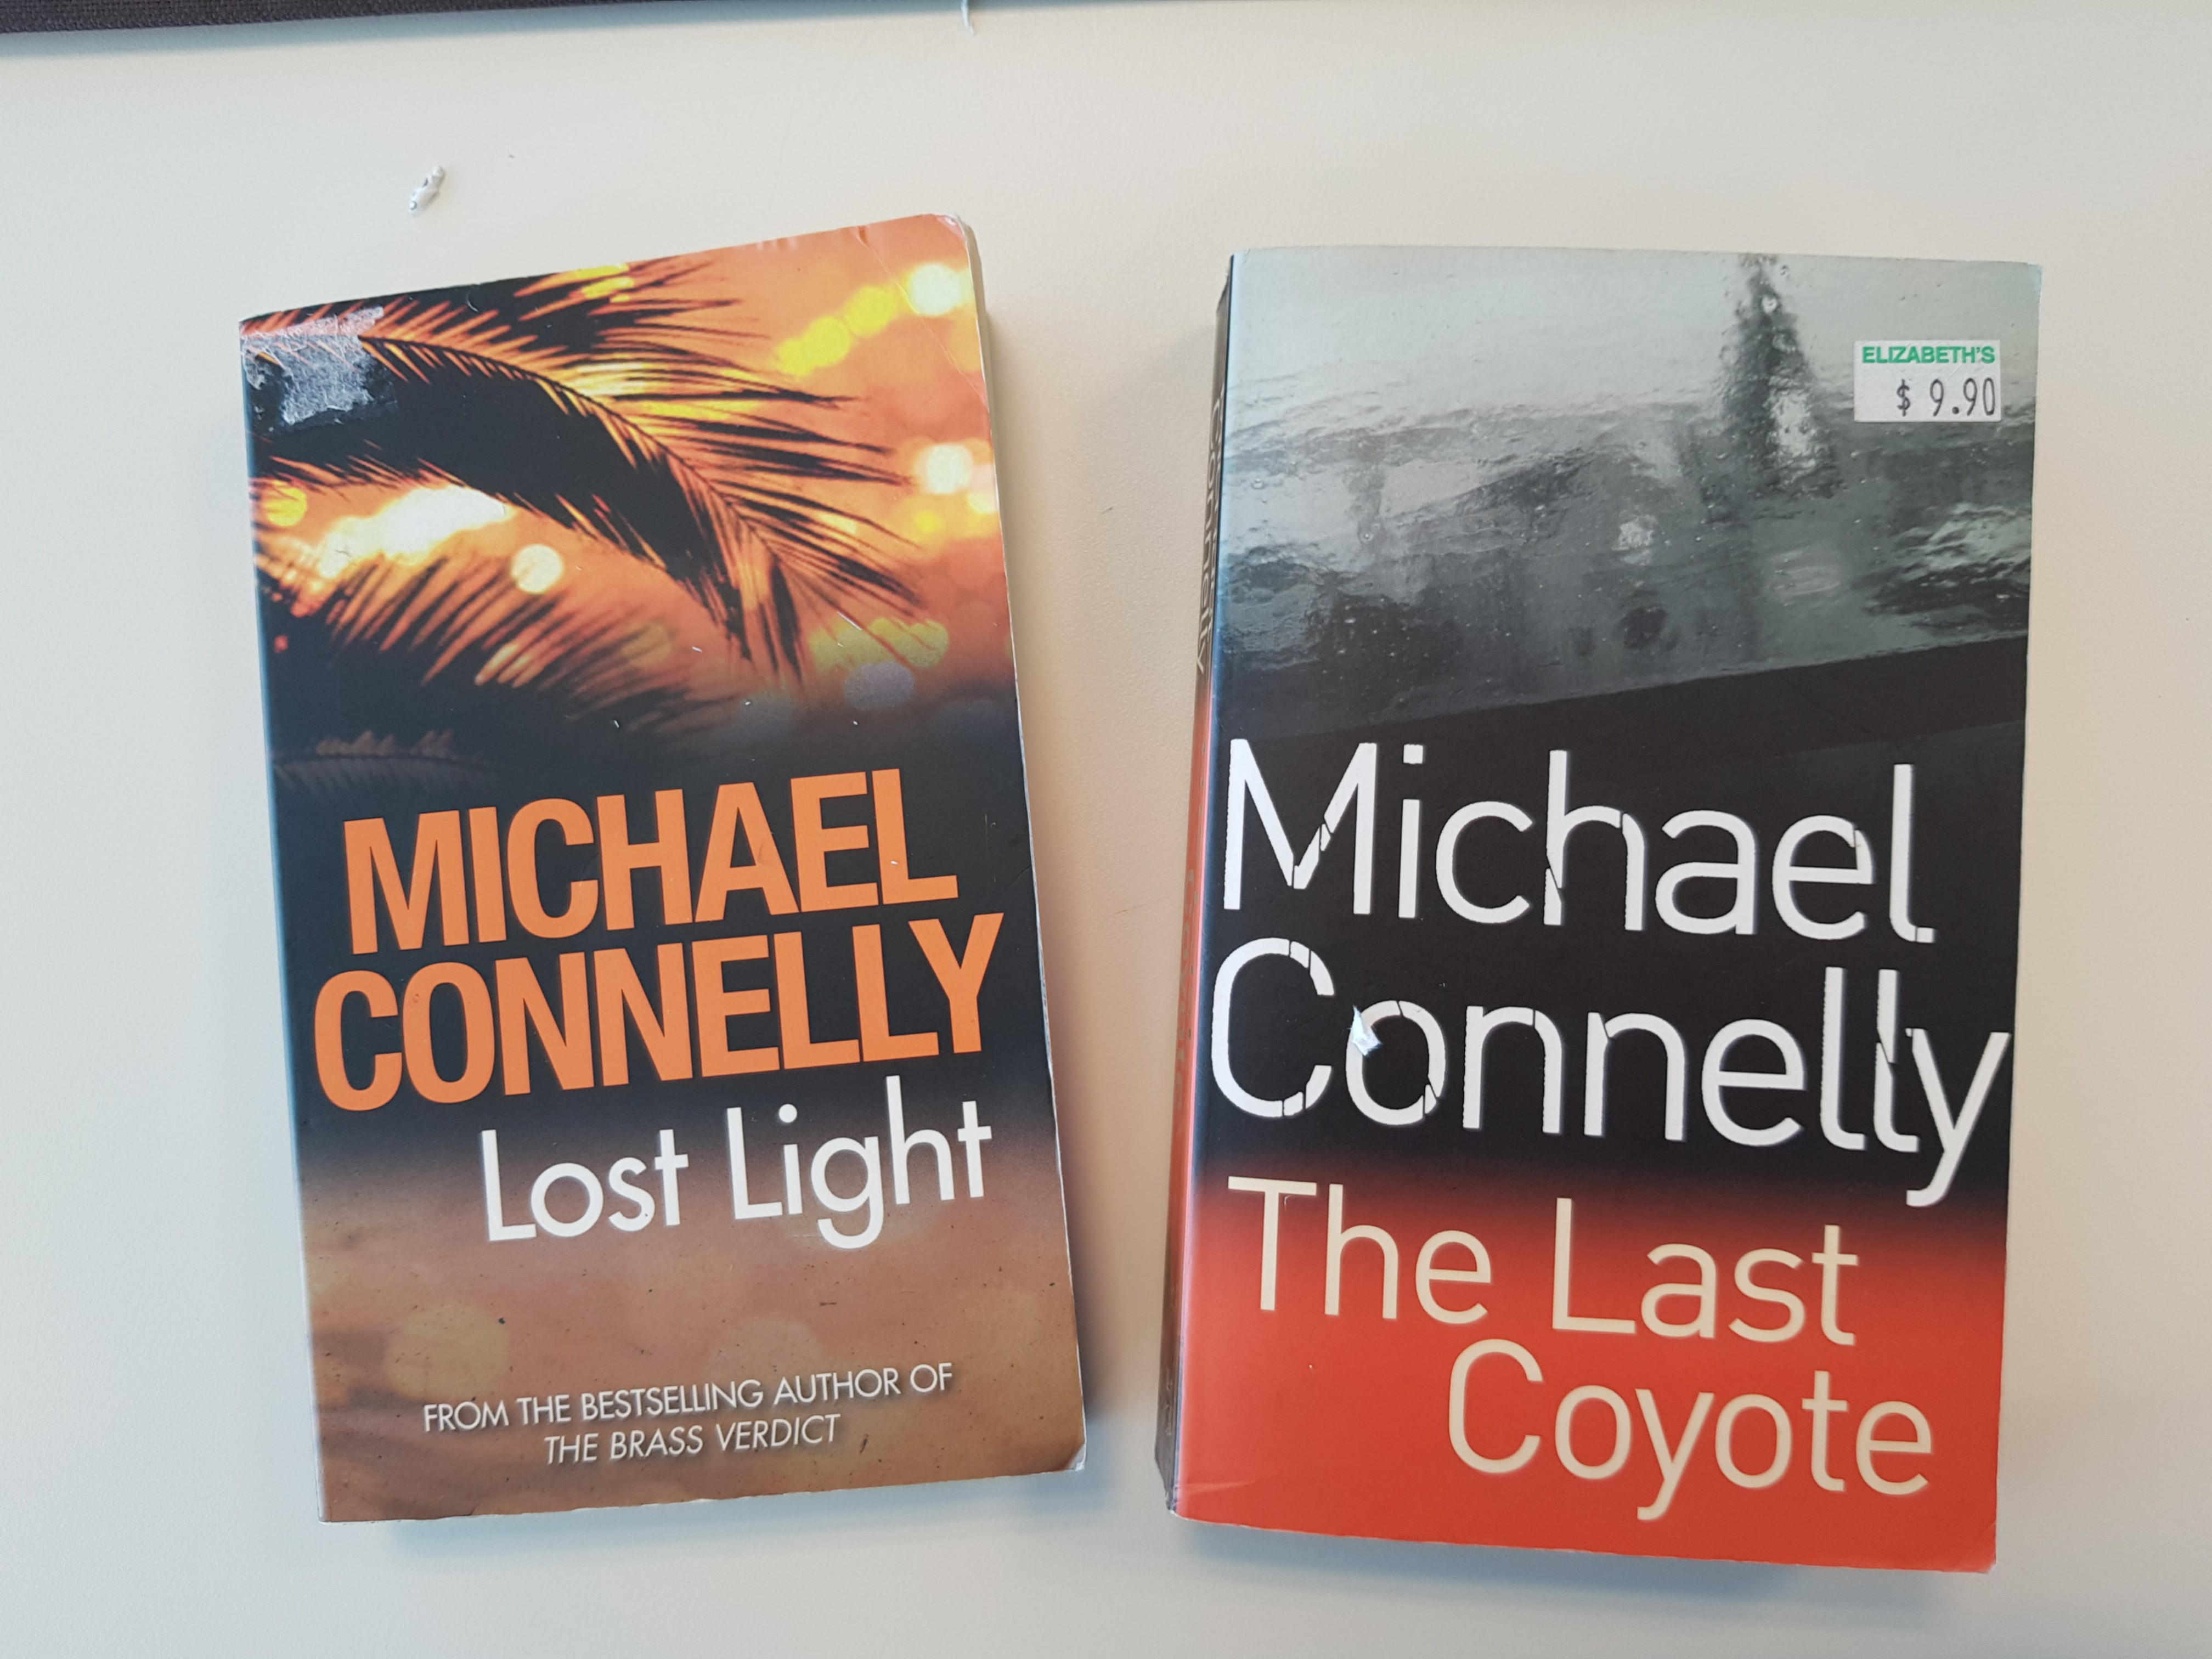 Michael Connelly novels